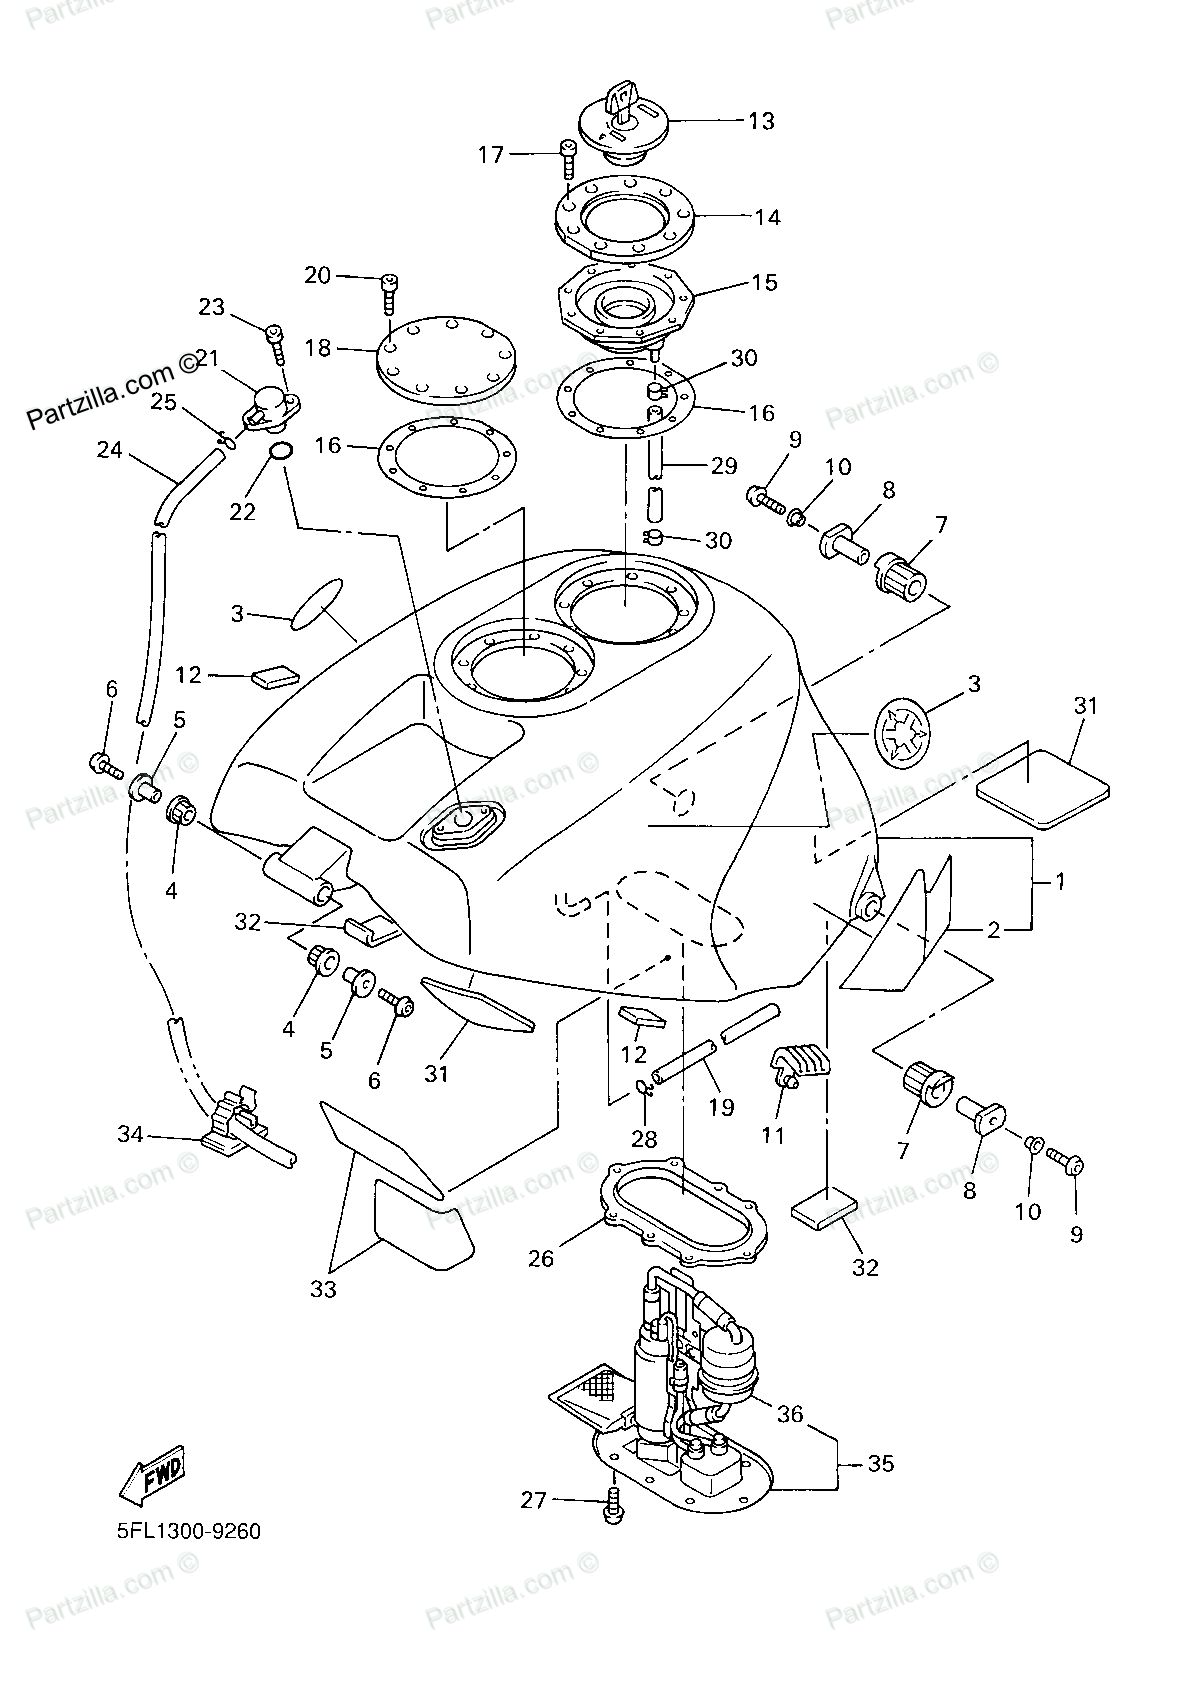 Yamaha Motorcycle Parts Diagram